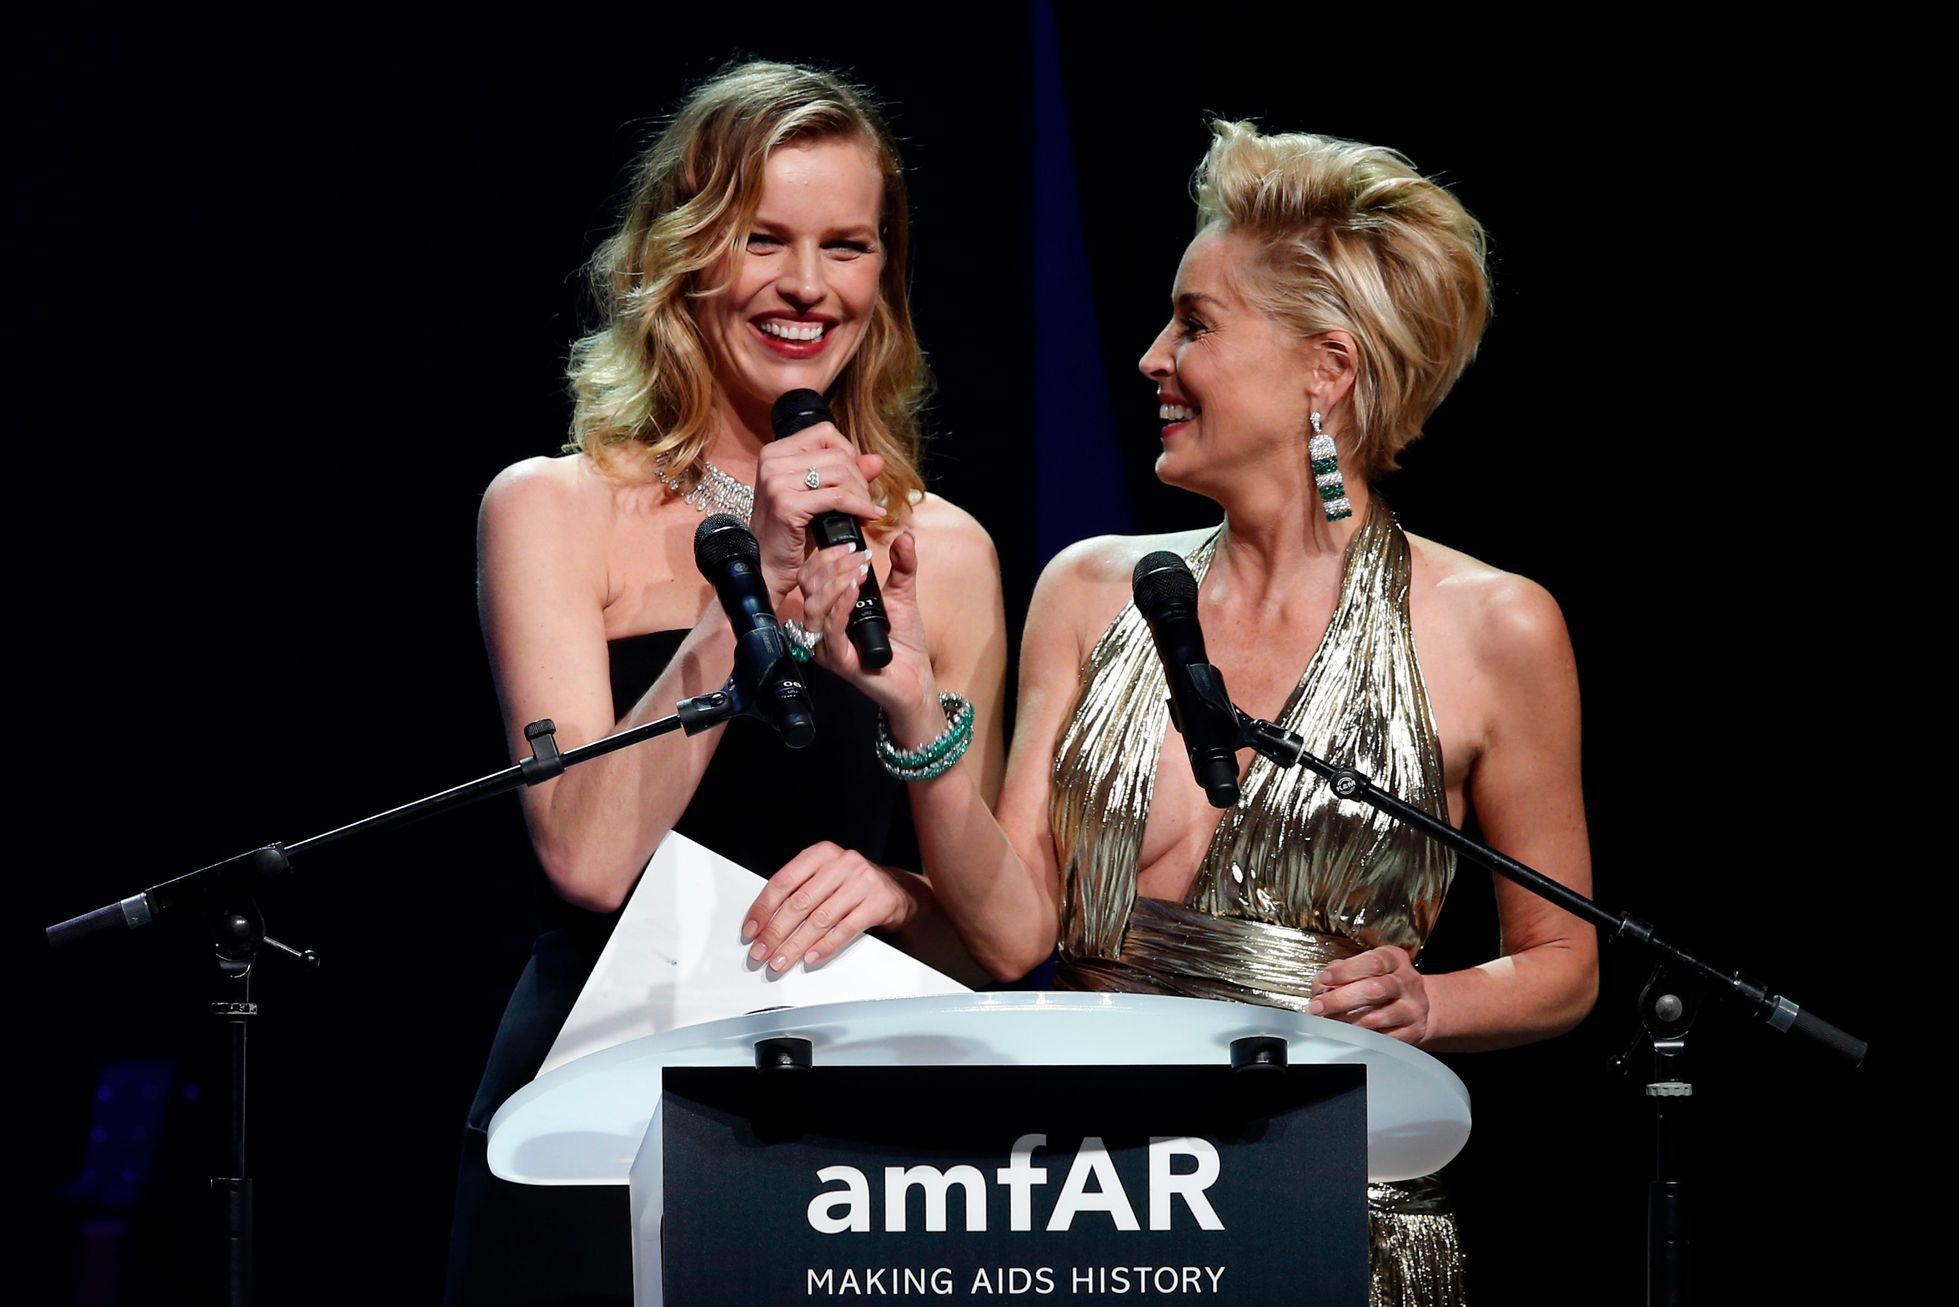 Model Herzigova of the Czech Republic and actress Stone of the U.S. attend an auction at the amfAR's Cinema Against AIDS 2014 event in Antibes